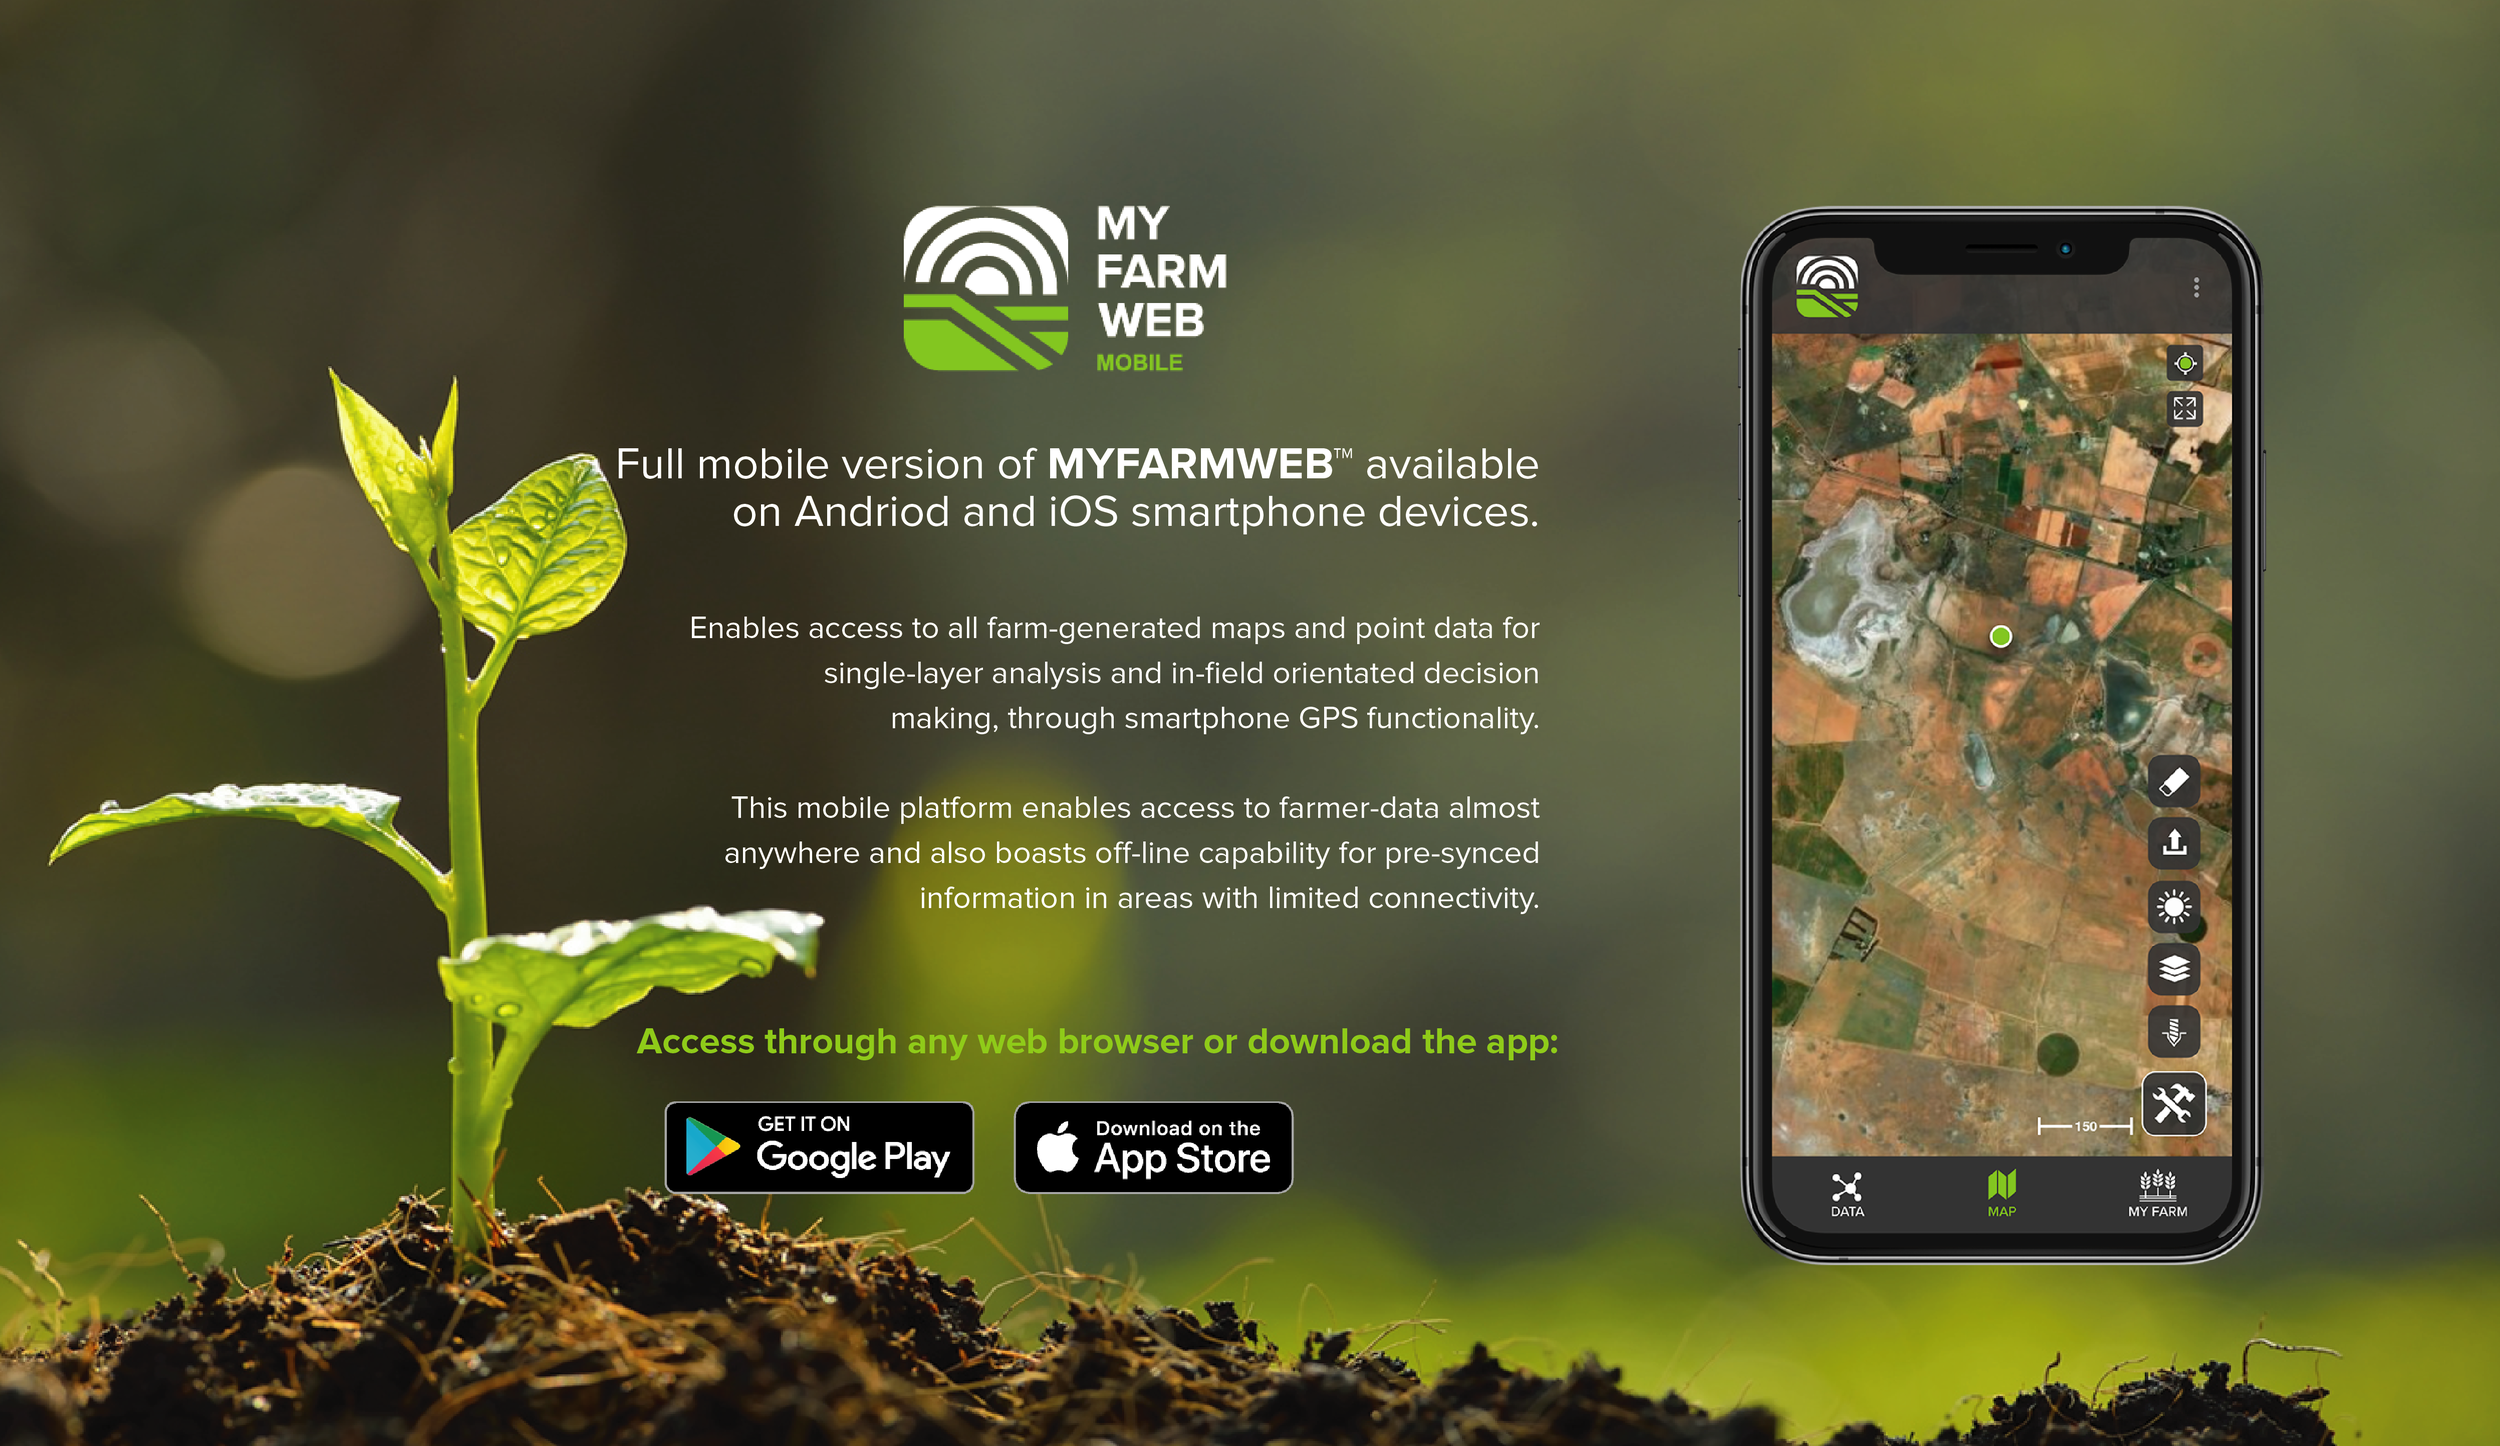 MYFARMWEB™ - MYFARMWEB™ is an interactive cloud based platform accessed through any browser for storing, visualizing and comparing multiple types of data relevant to a particular farm.